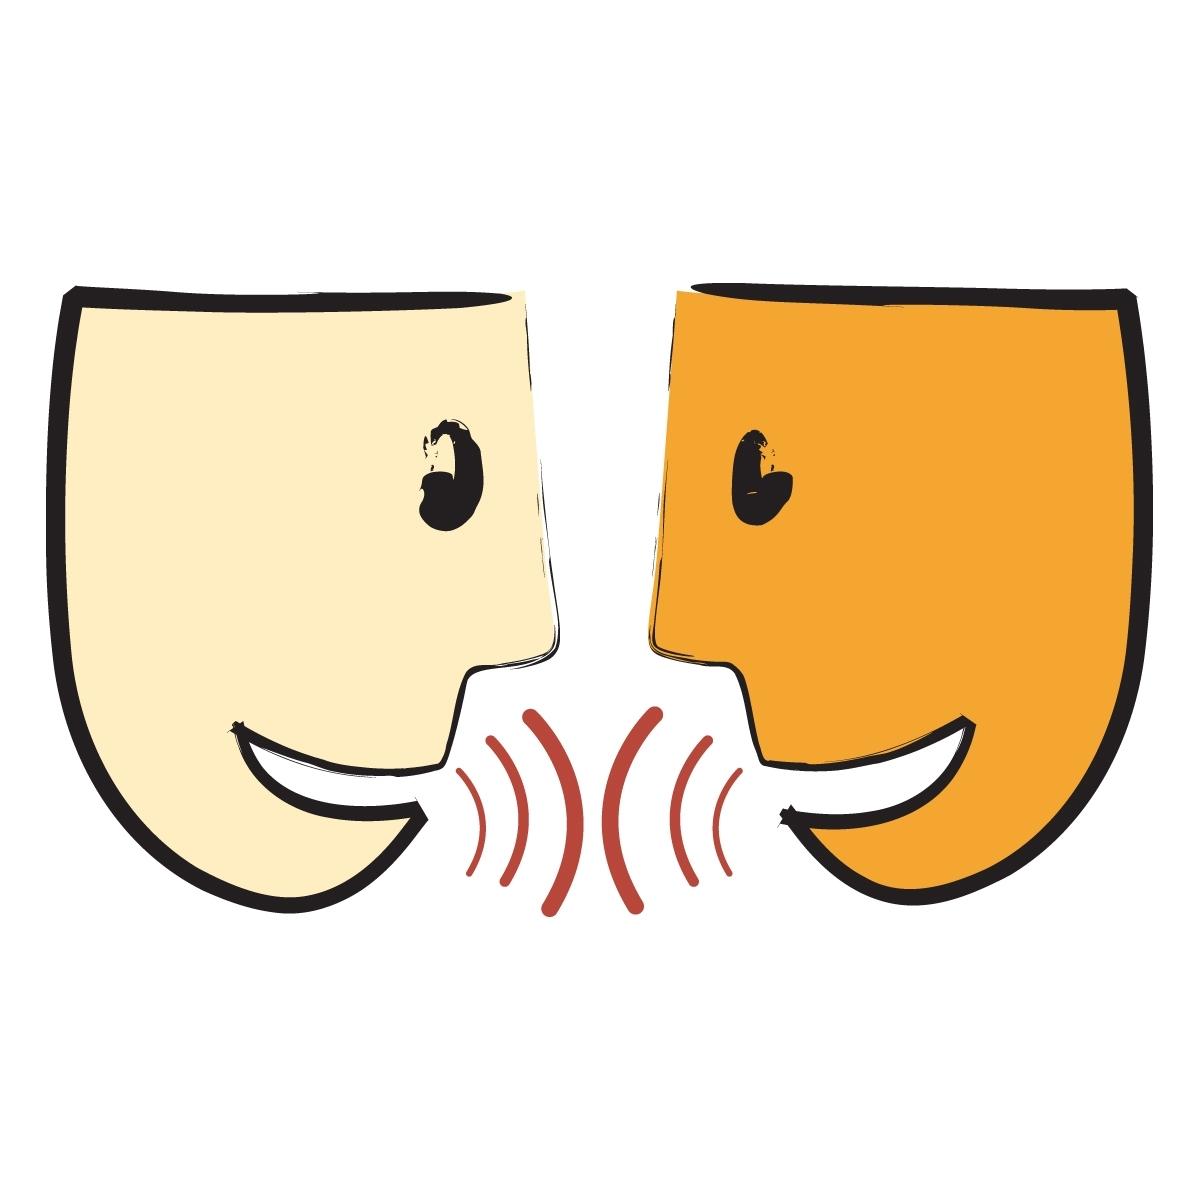 Clip art library . Communication clipart oral communication